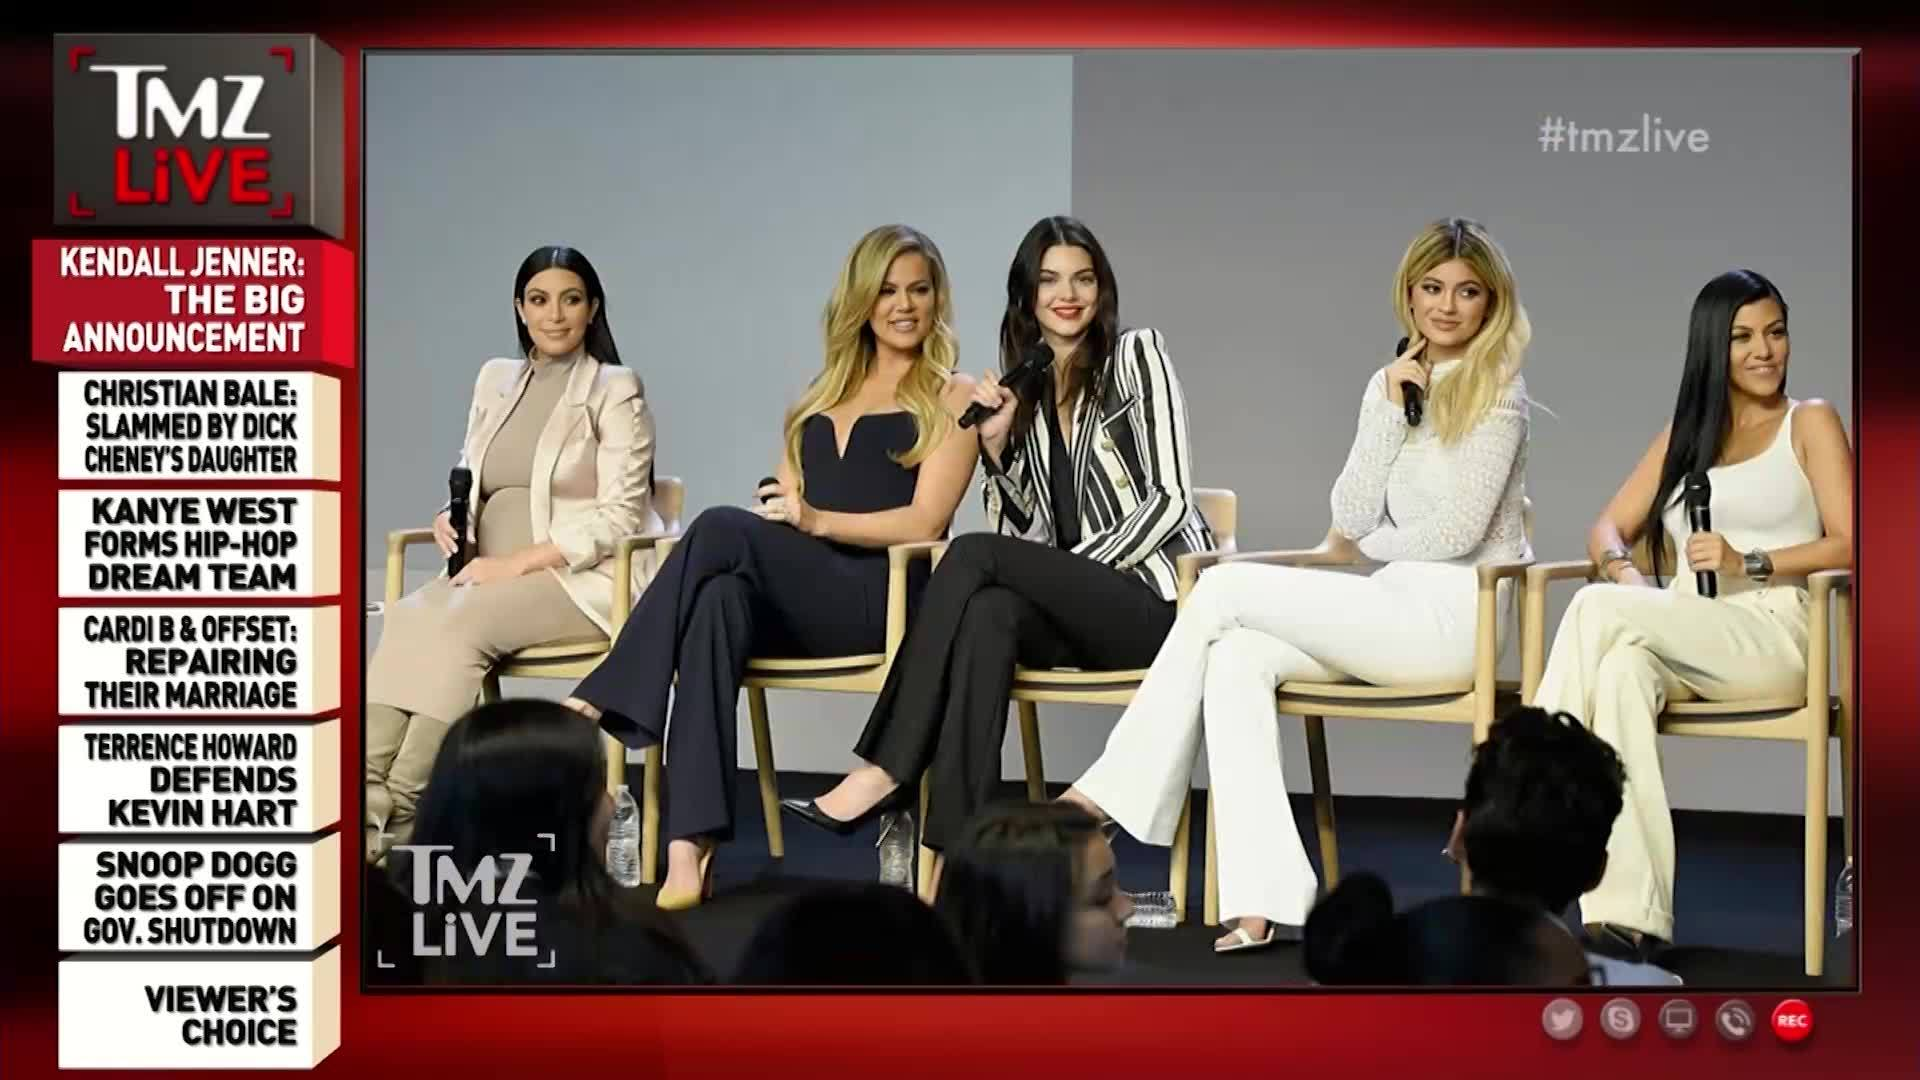 TMZ goes into detail about Kendall Jenner's big announcement that has tons of fans angry.